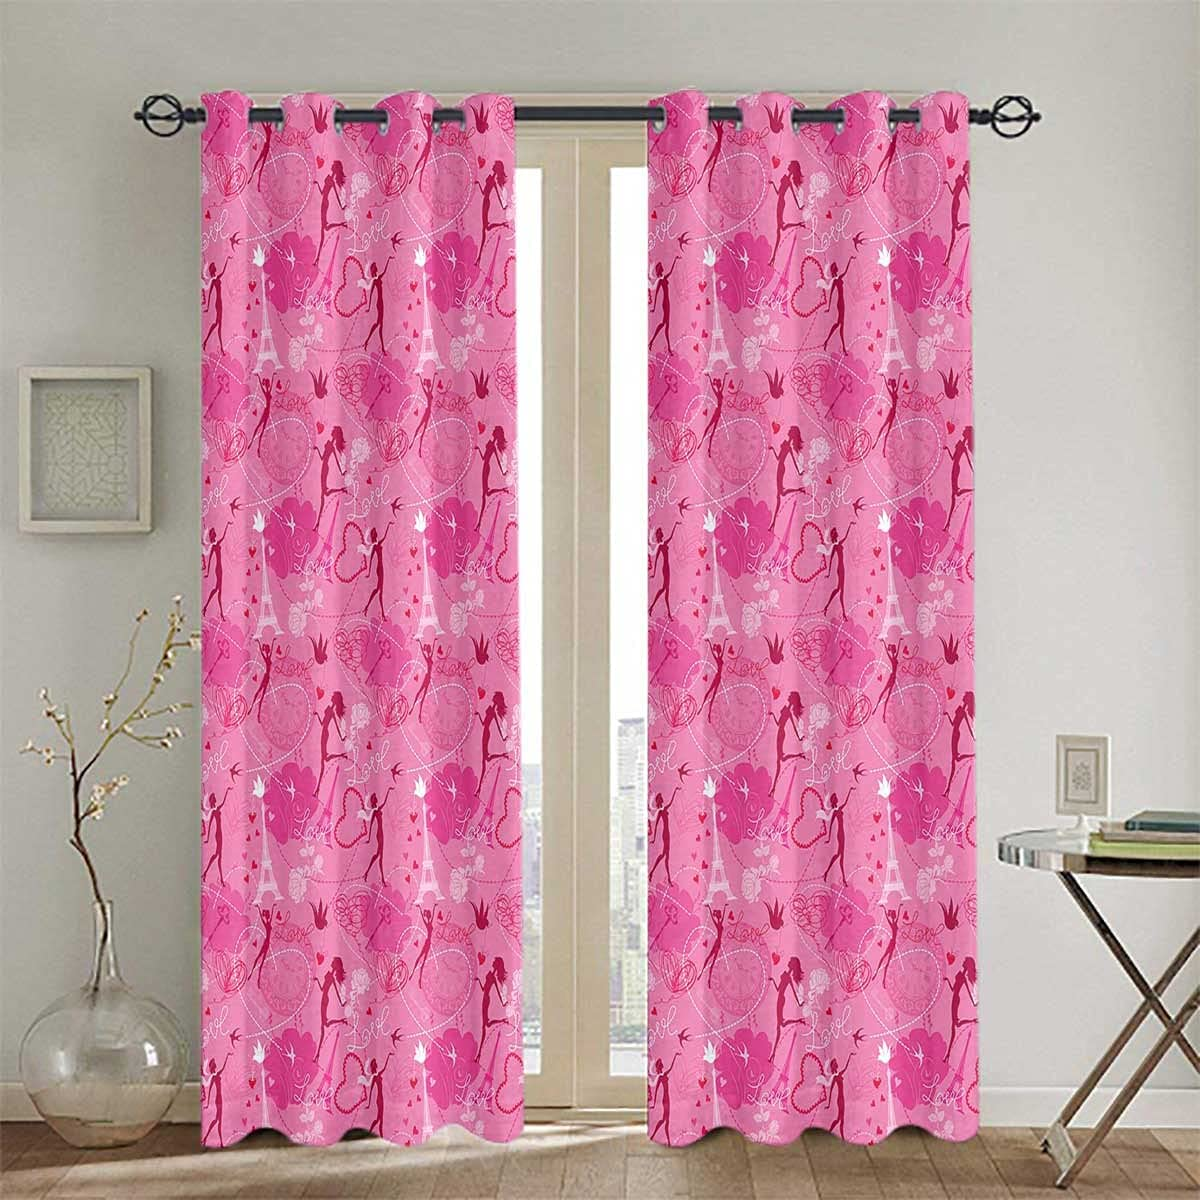 Grommet Super Special SALE held Blackout Curtains for Bedroom Fairy Online limited product Hearts Gr Women Pink